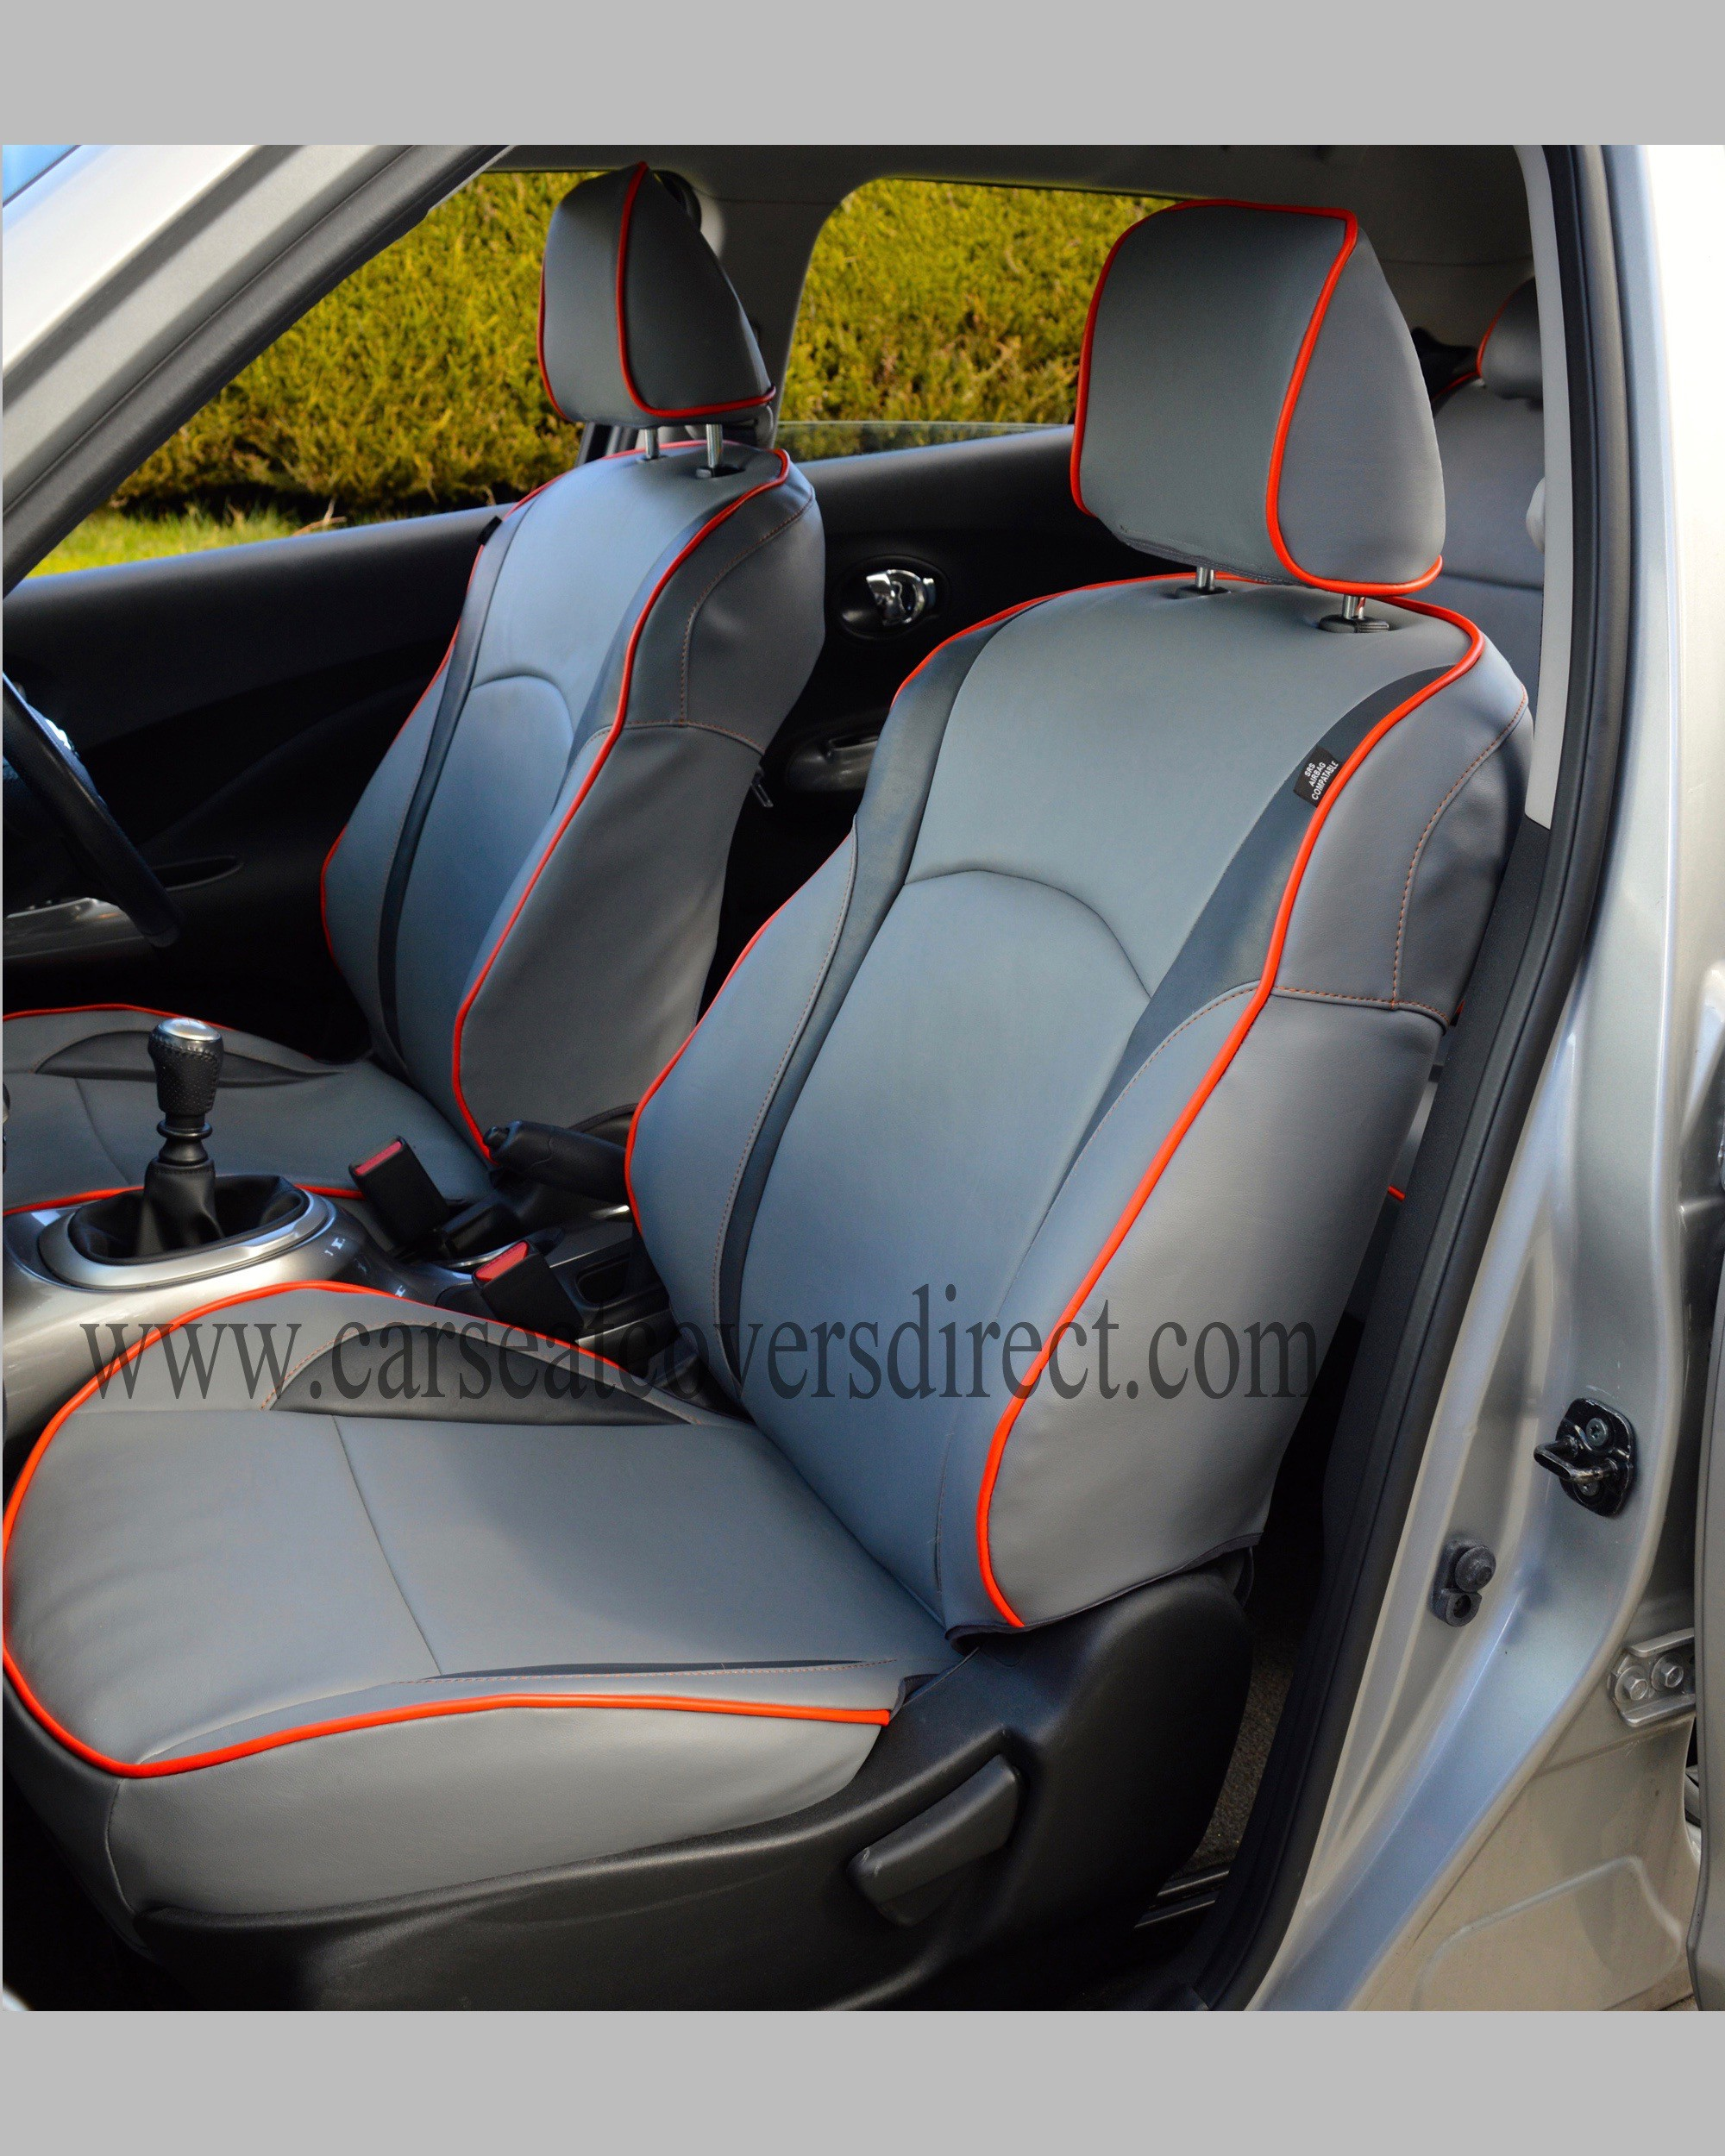 NISSAN JUKE Grey Seat Covers Car Seat Covers Direct - Tailored To ...